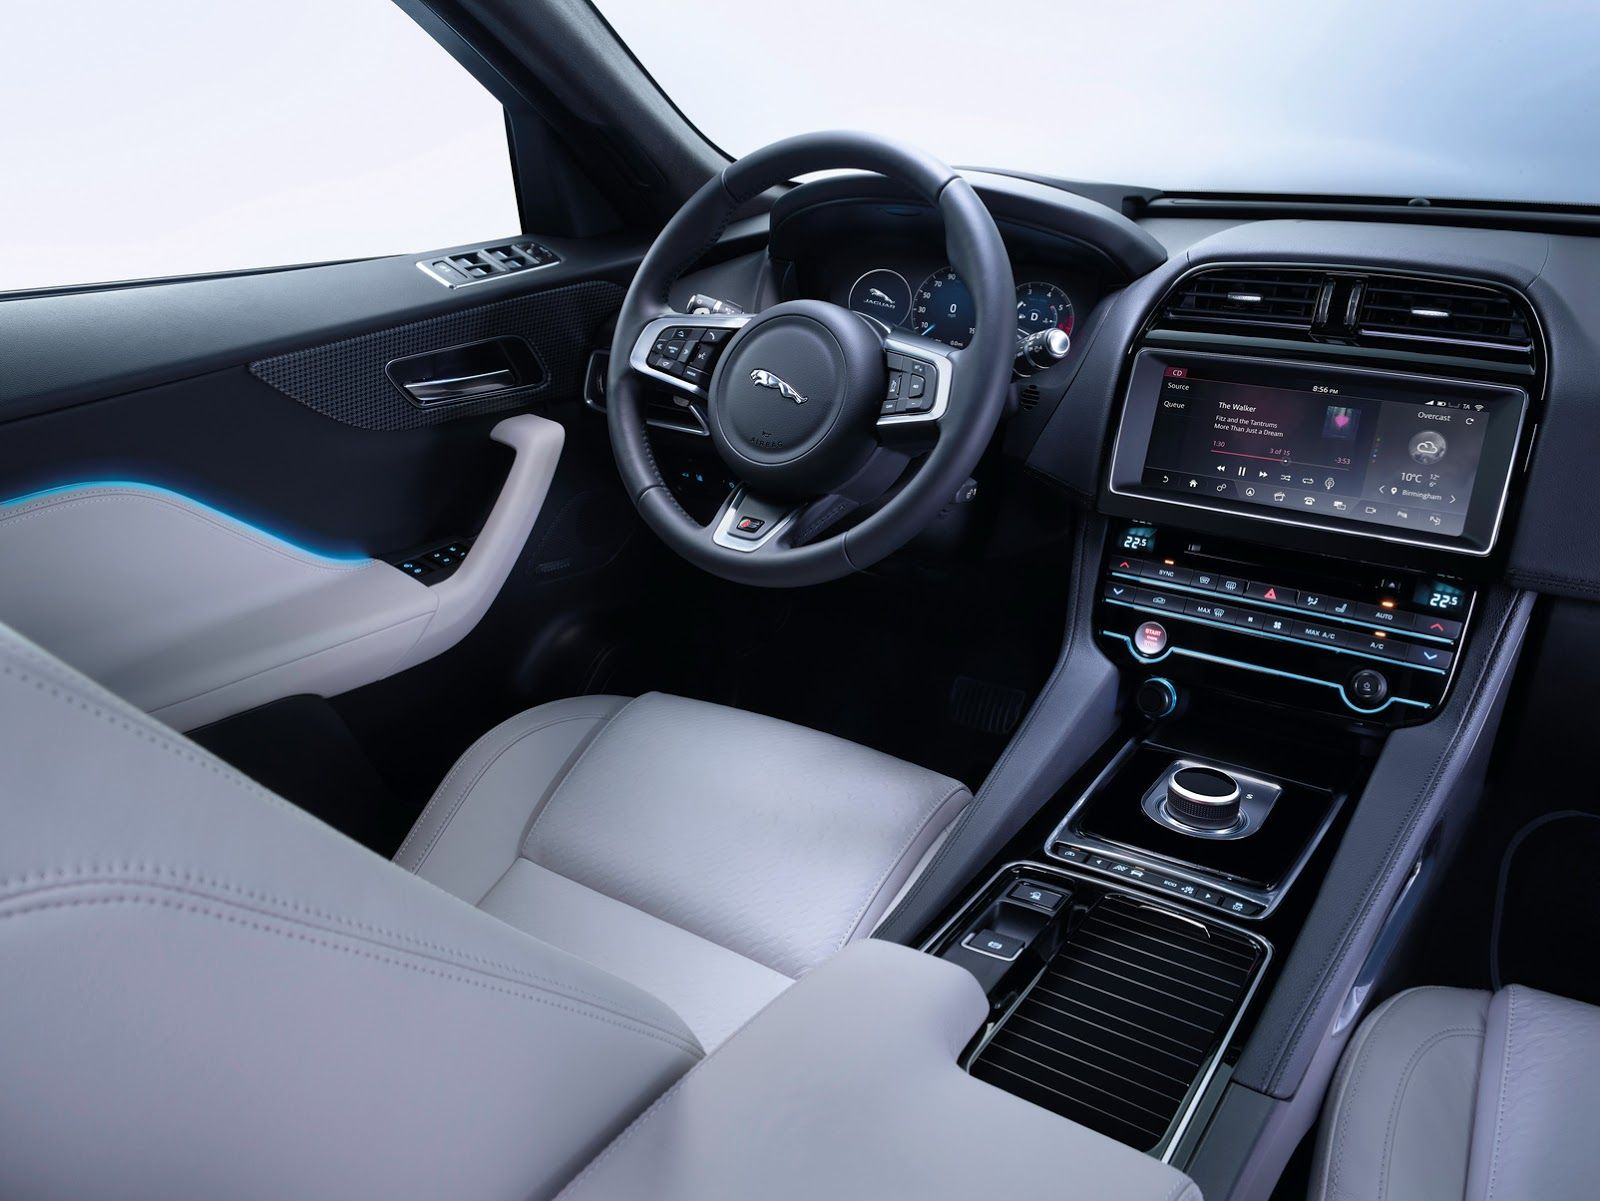 Jaguar S F Pace Demonstrates That An Suv Can Look Good Jaguar Suv Interior Jaguar Suv Jaguar Fpace